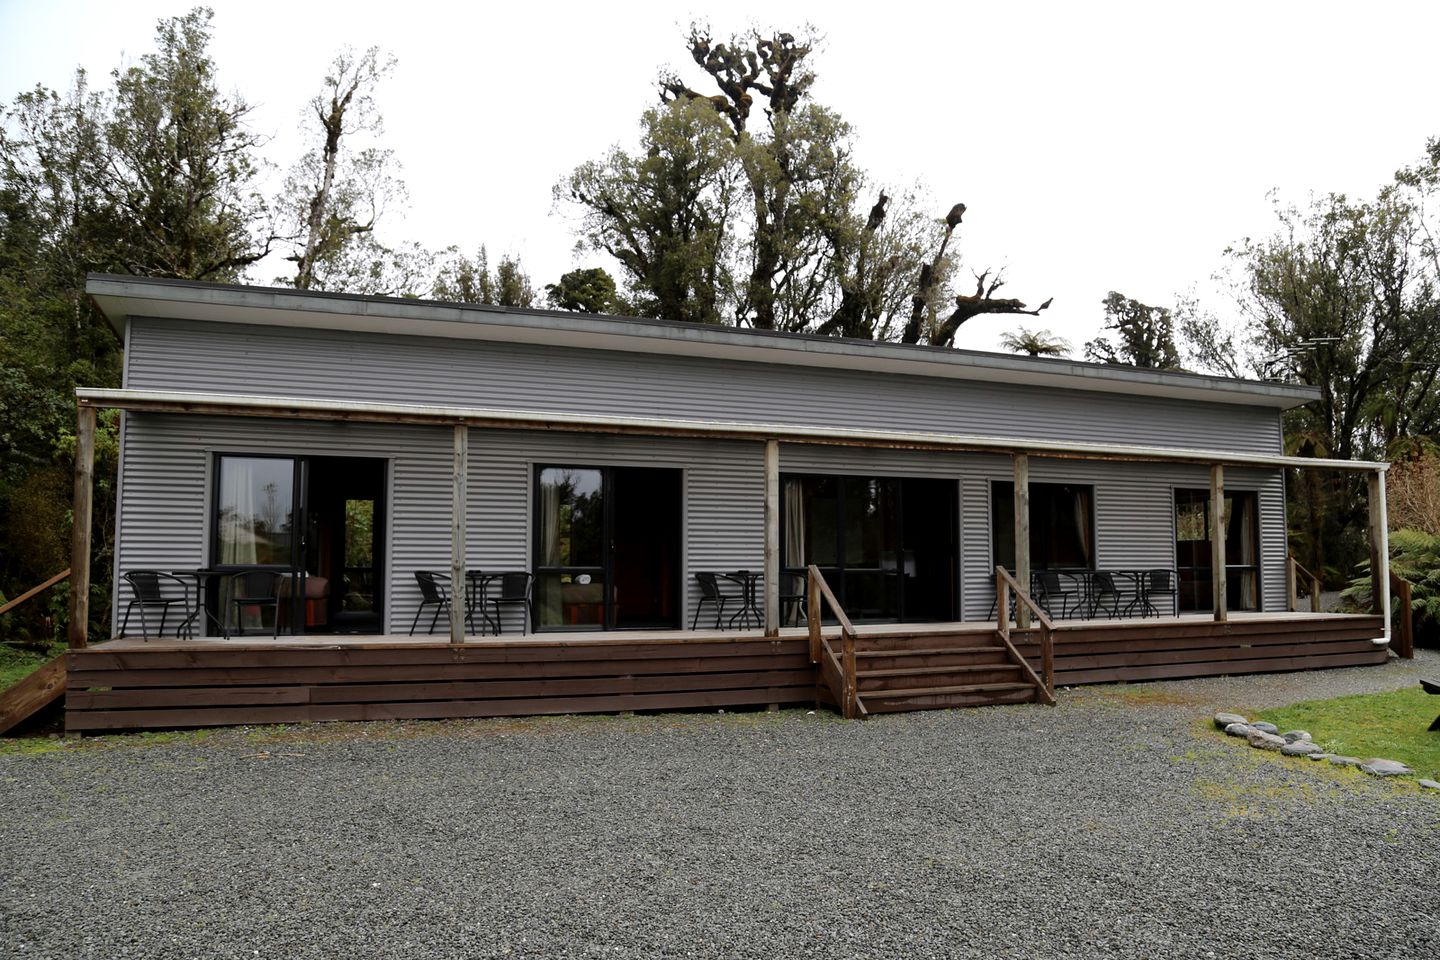 Exterior of Franz Josef accommodation in New Zealand